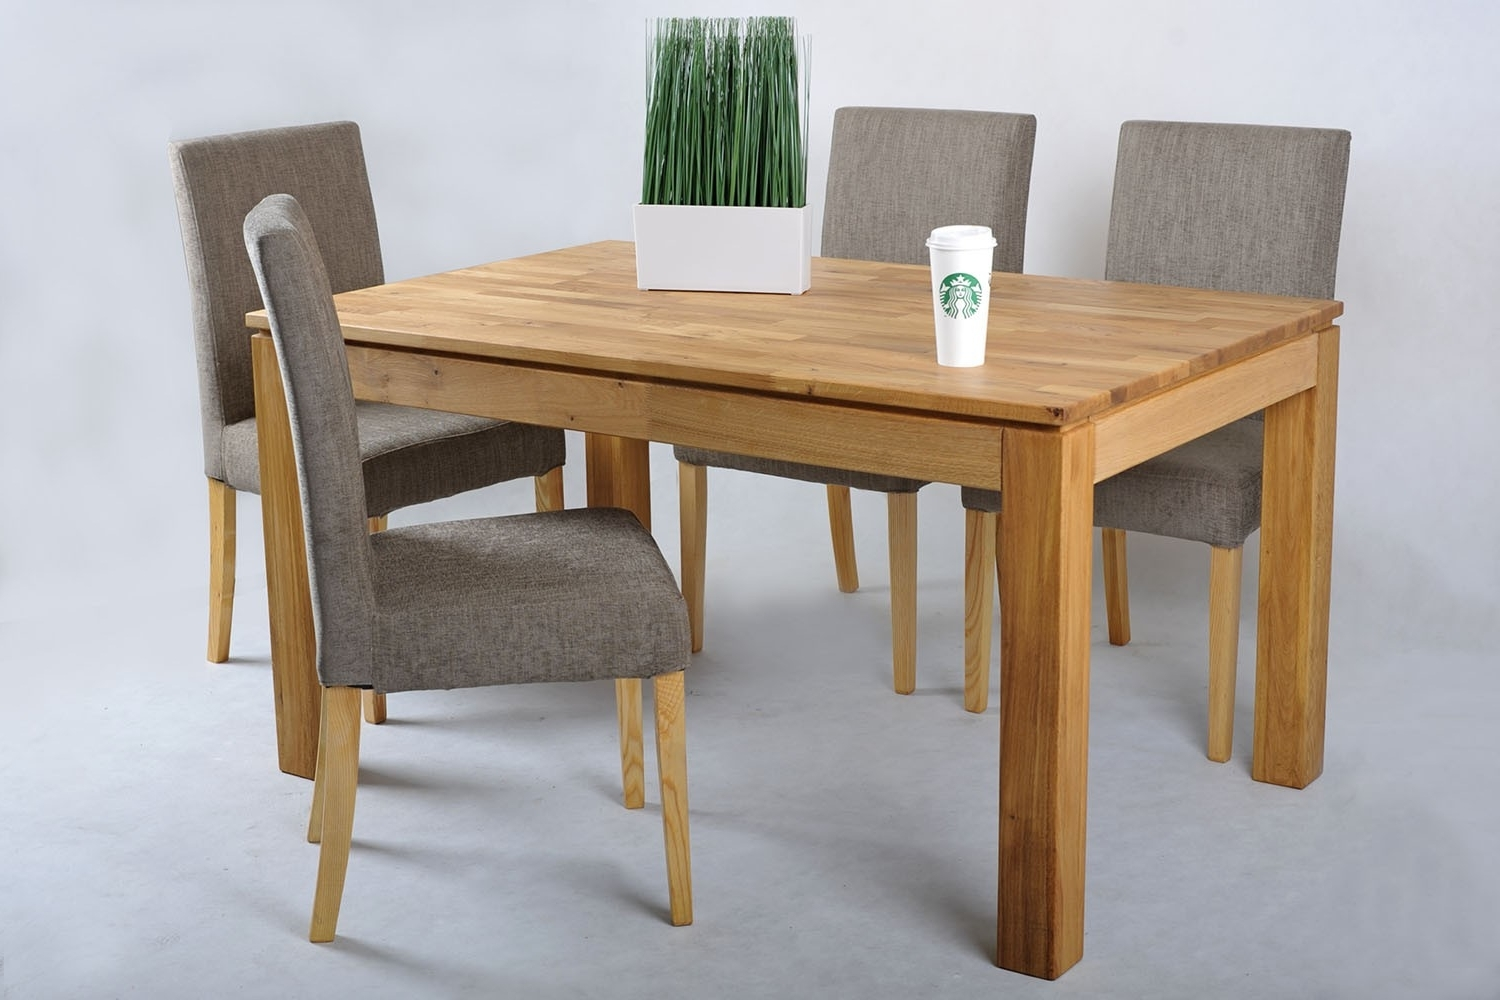 Grey Pertaining To Most Up To Date Extending Dining Tables Sets (View 23 of 25)